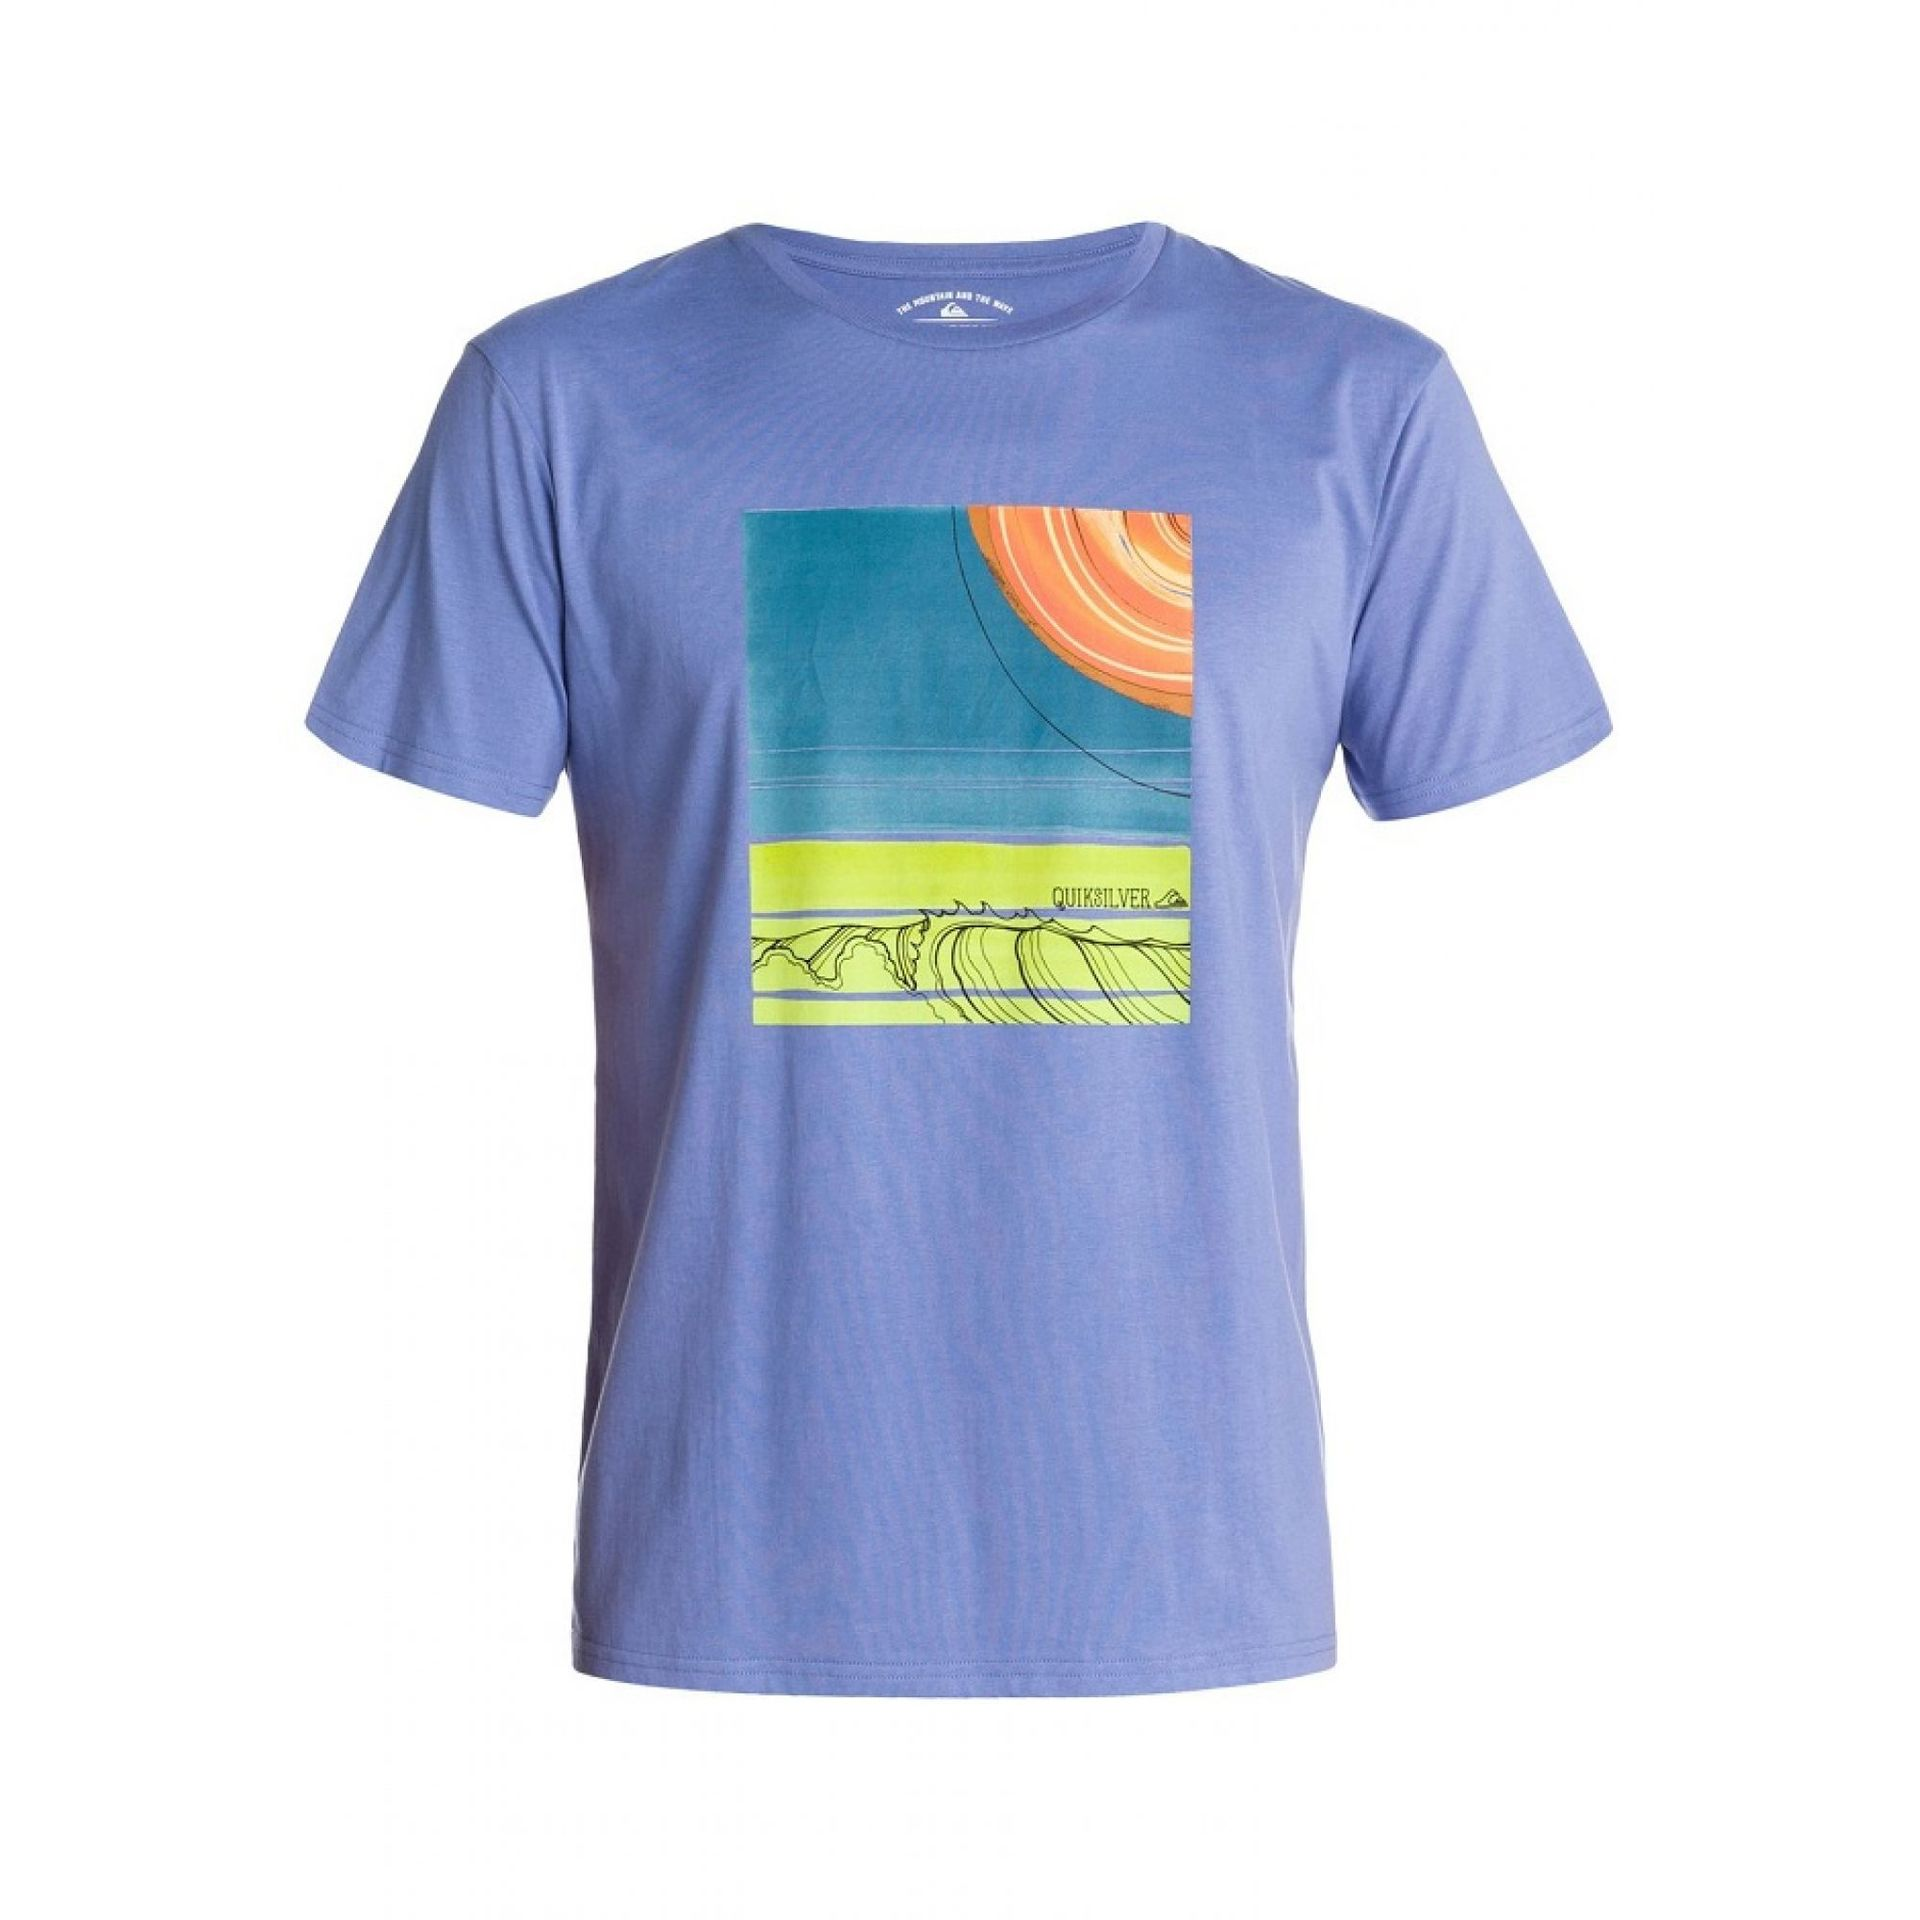 T-SHIRT QUIKSILVER BASIC FIOLETOWY